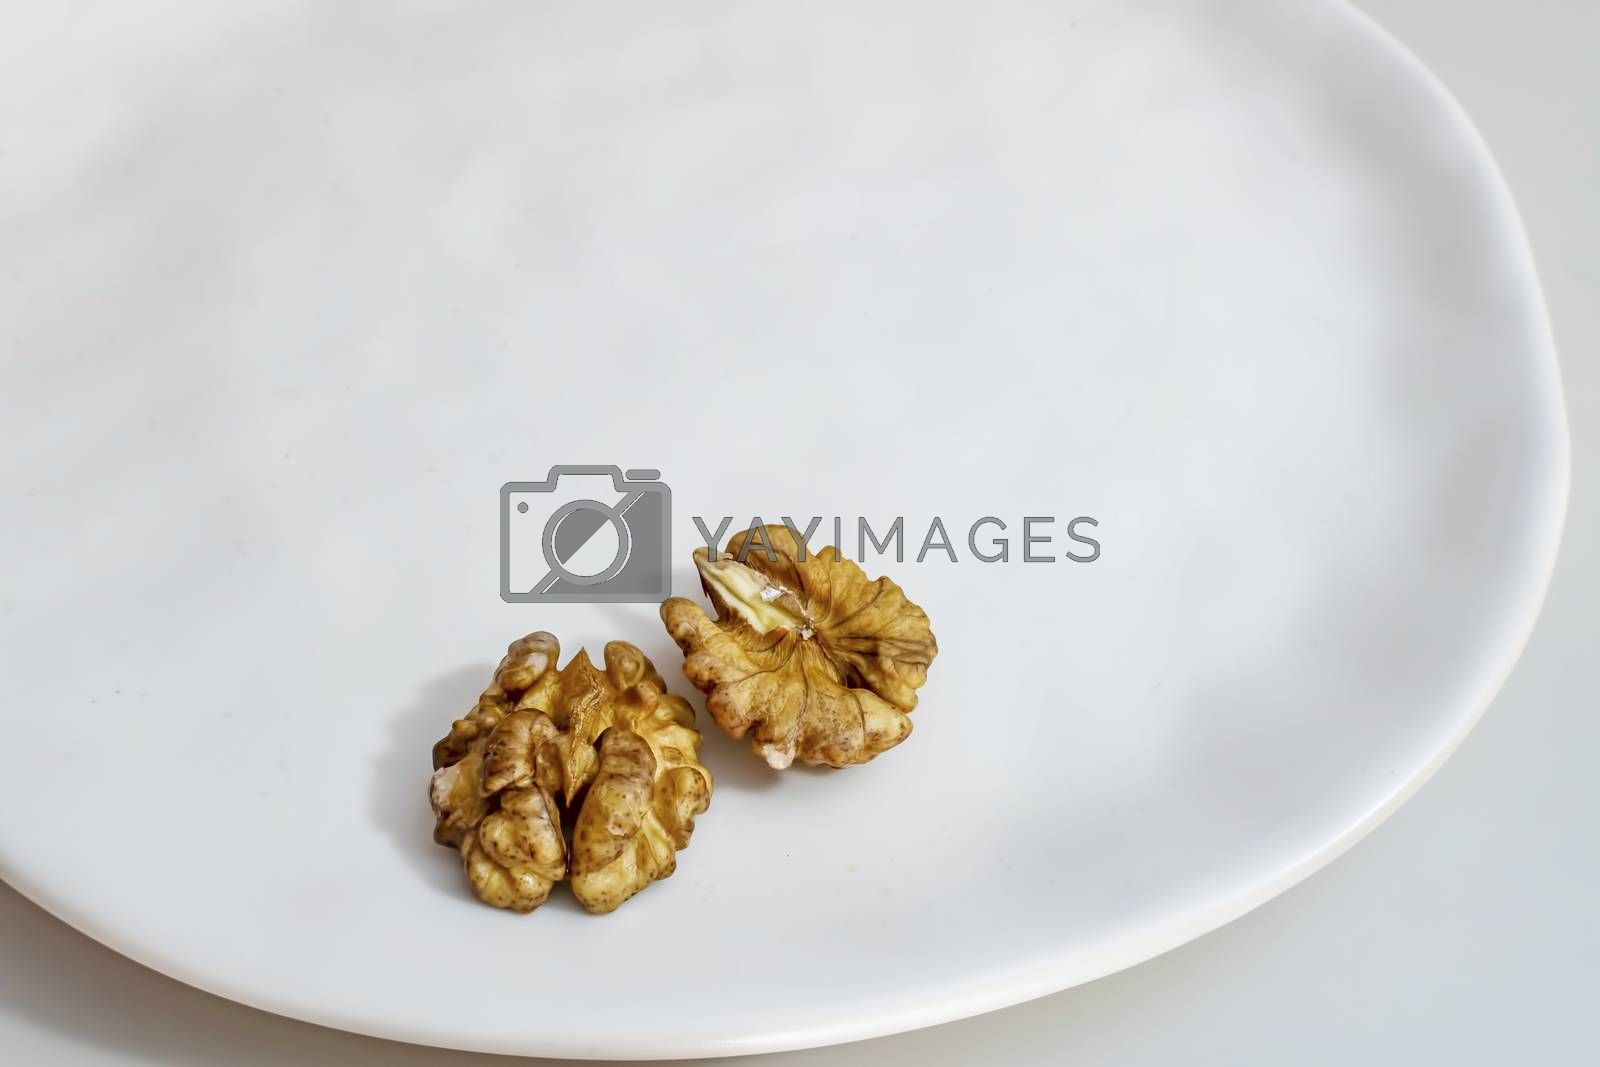 unshelled walnuts on a white plate